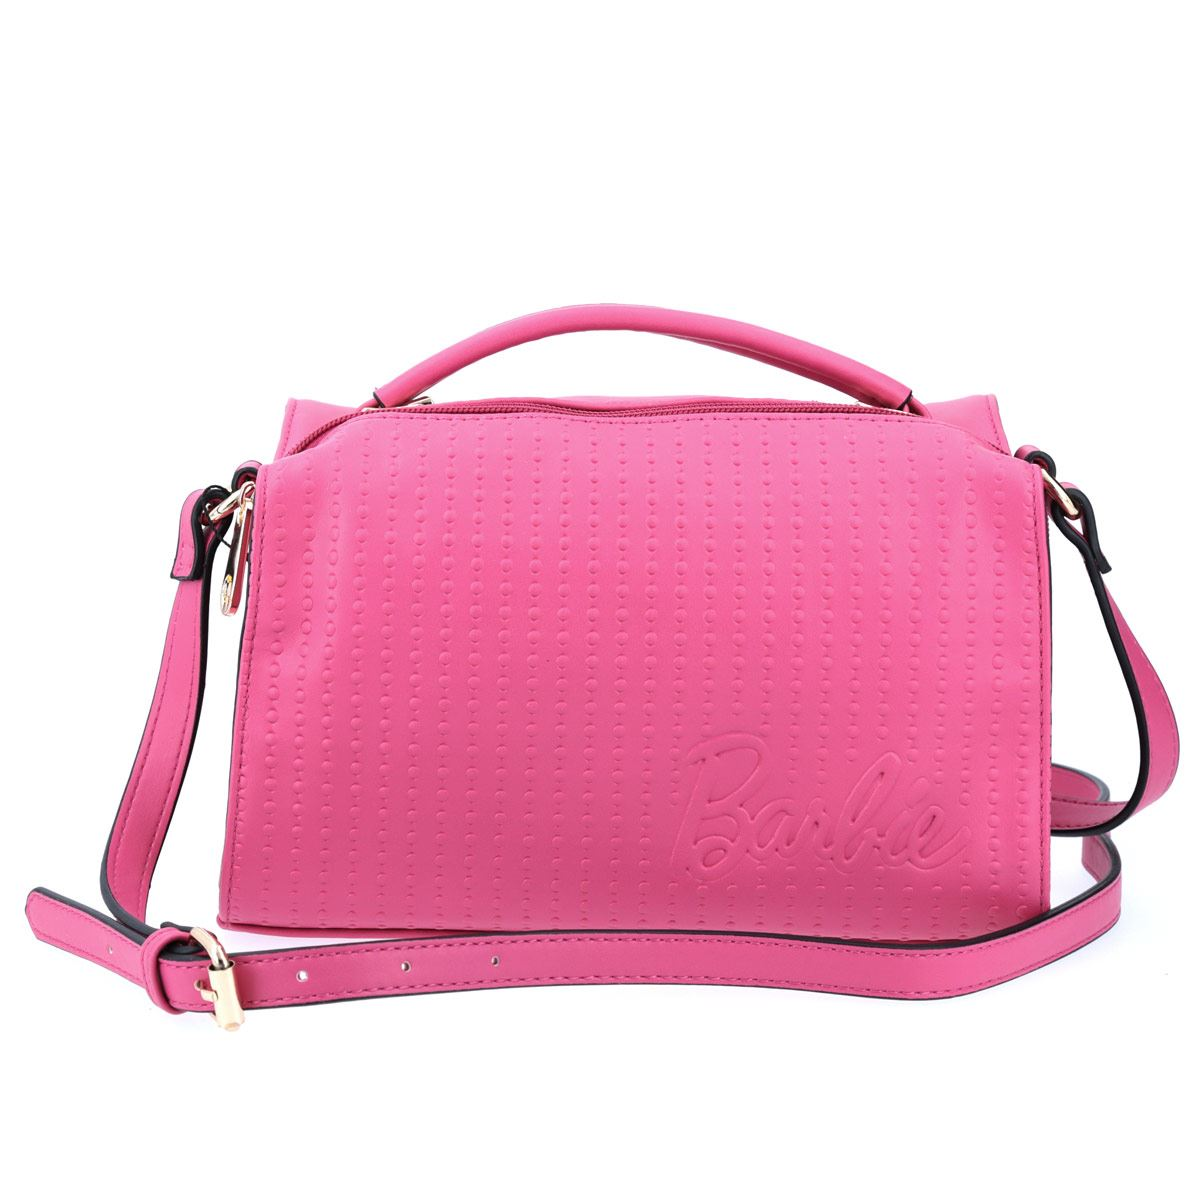 Bolso Barbie crossbody rosa